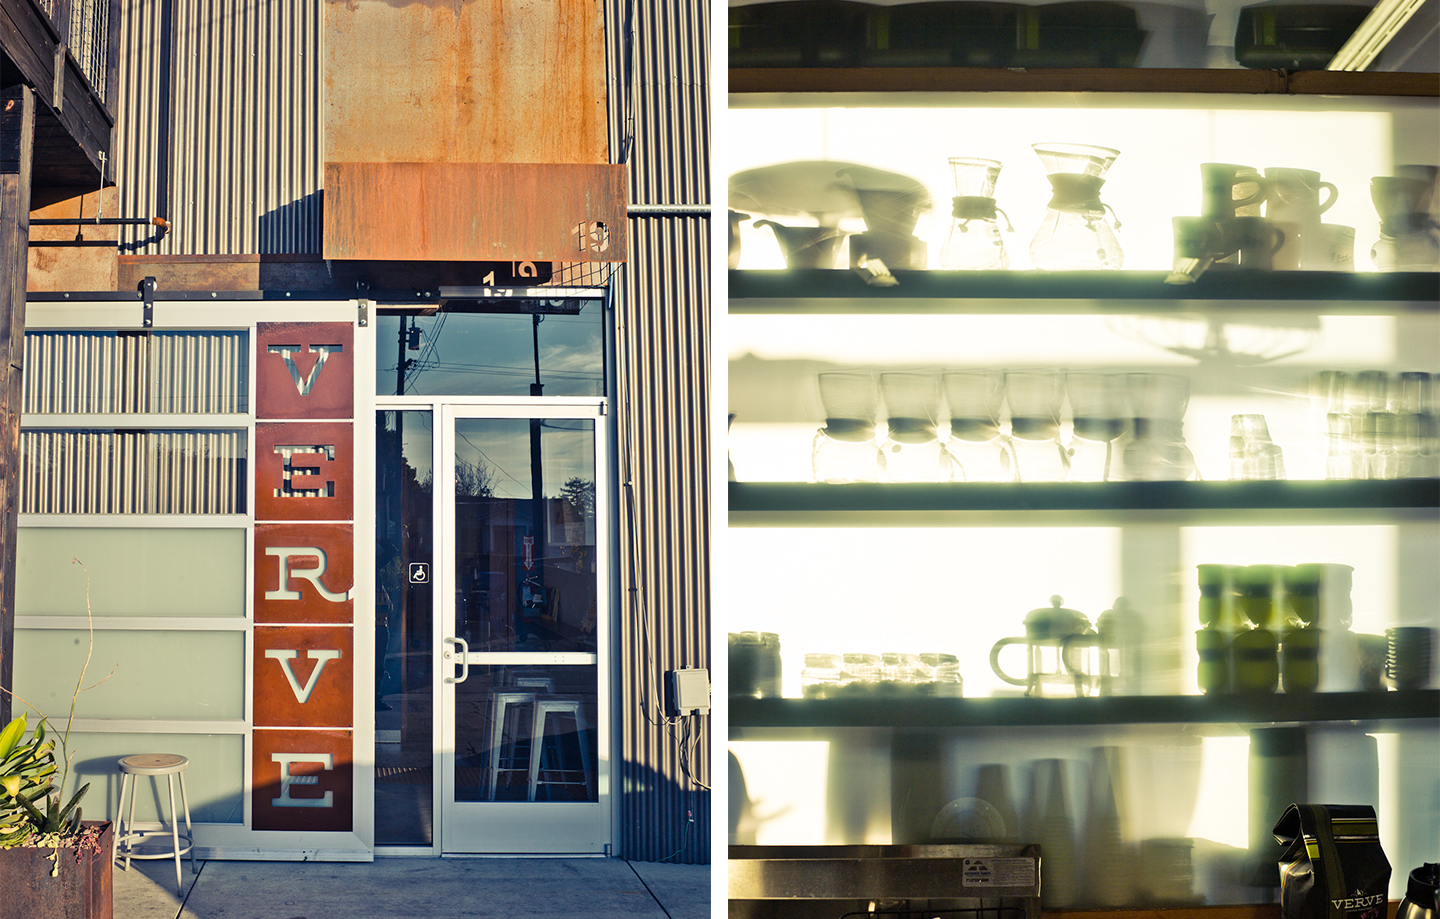 Verve Coffee Roasters Headquarters - Main Entrance and Shelving Display